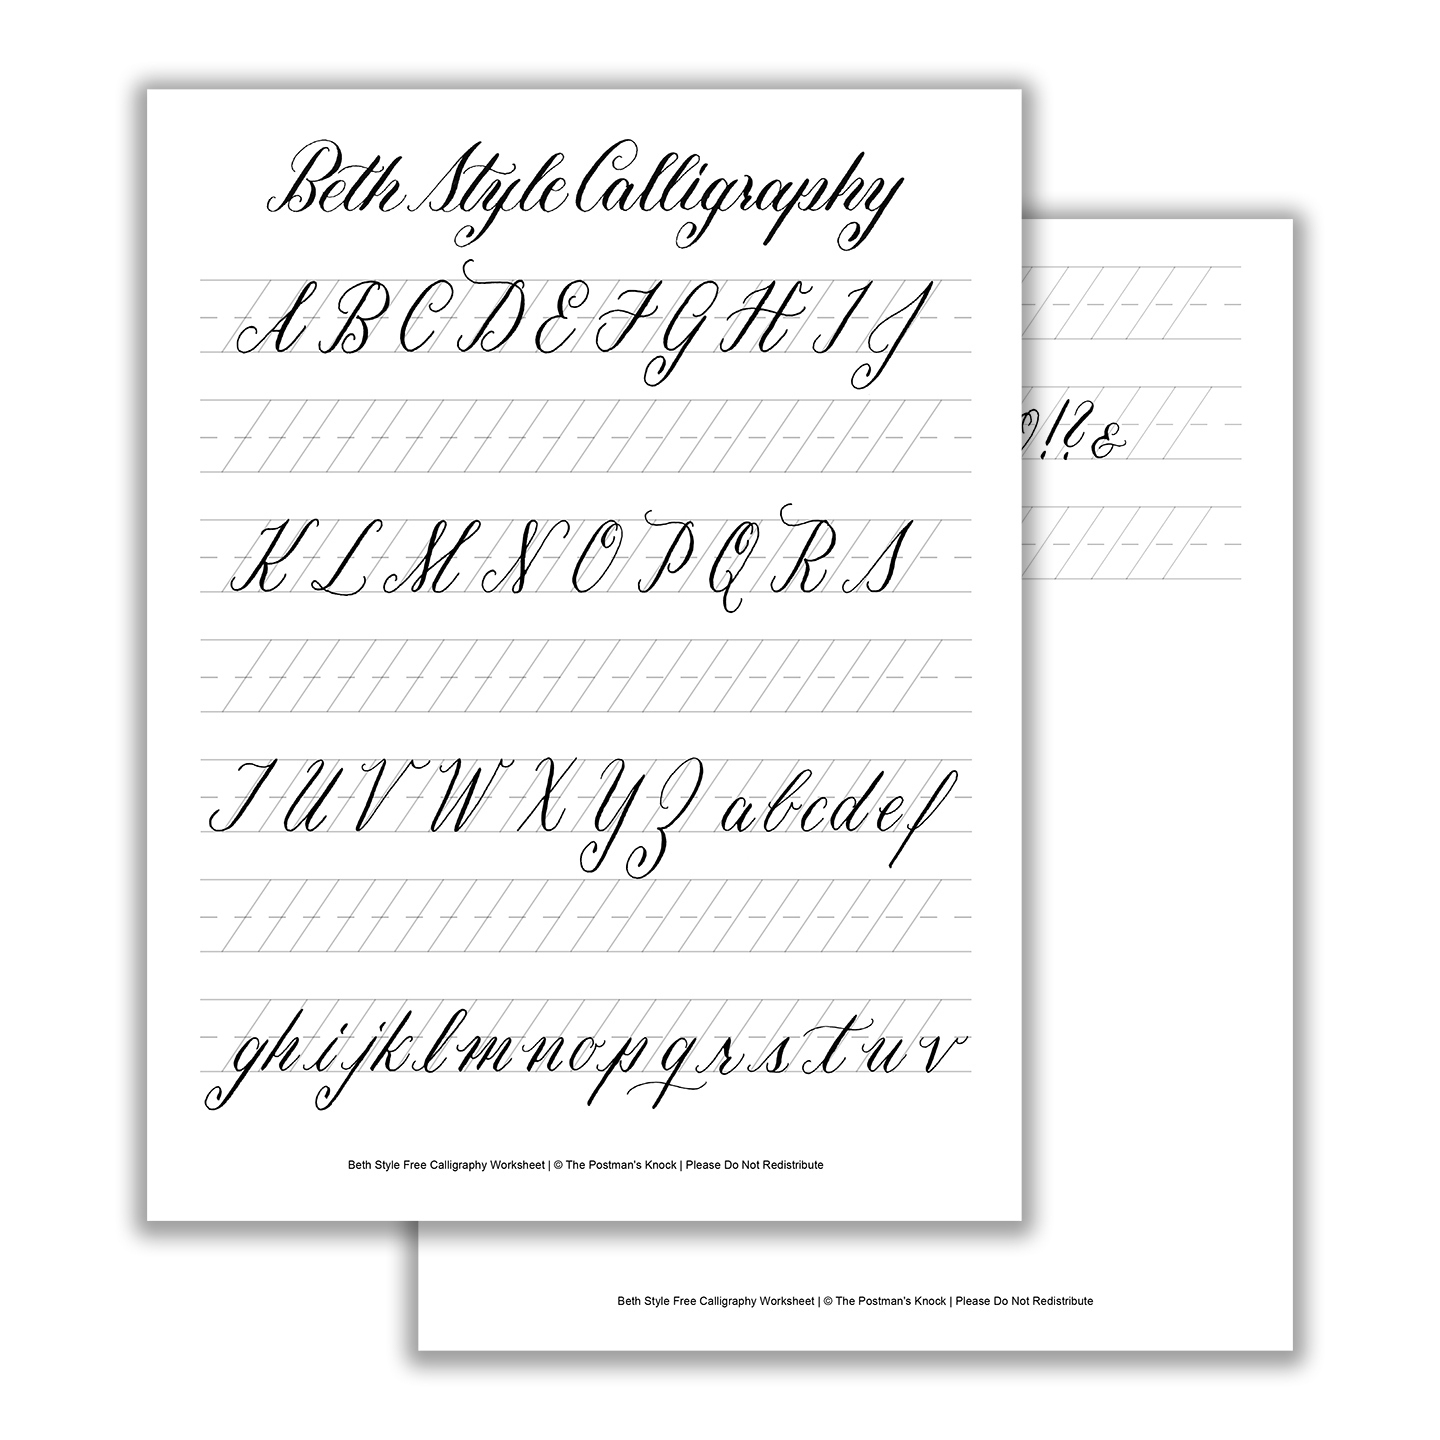 Beth Style Calligraphy Standard Worksheet | The Postman's Knock | Printable Calligraphy Practice Worksheets